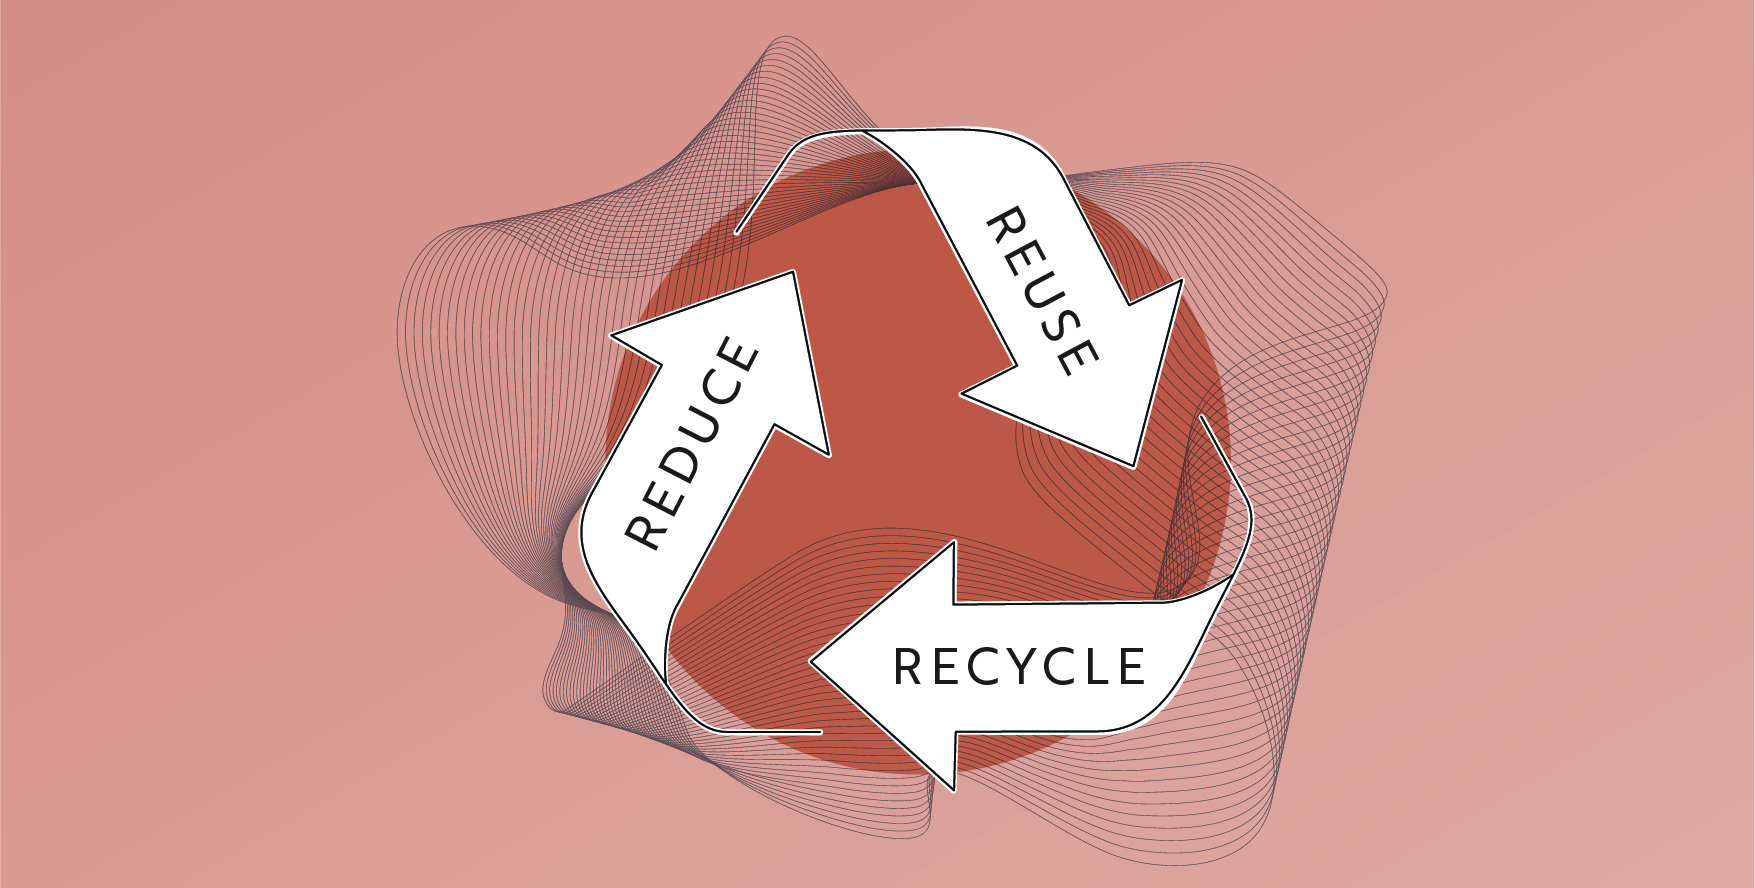 Cradle to cradle vs. Recycling: wat is het verschil?